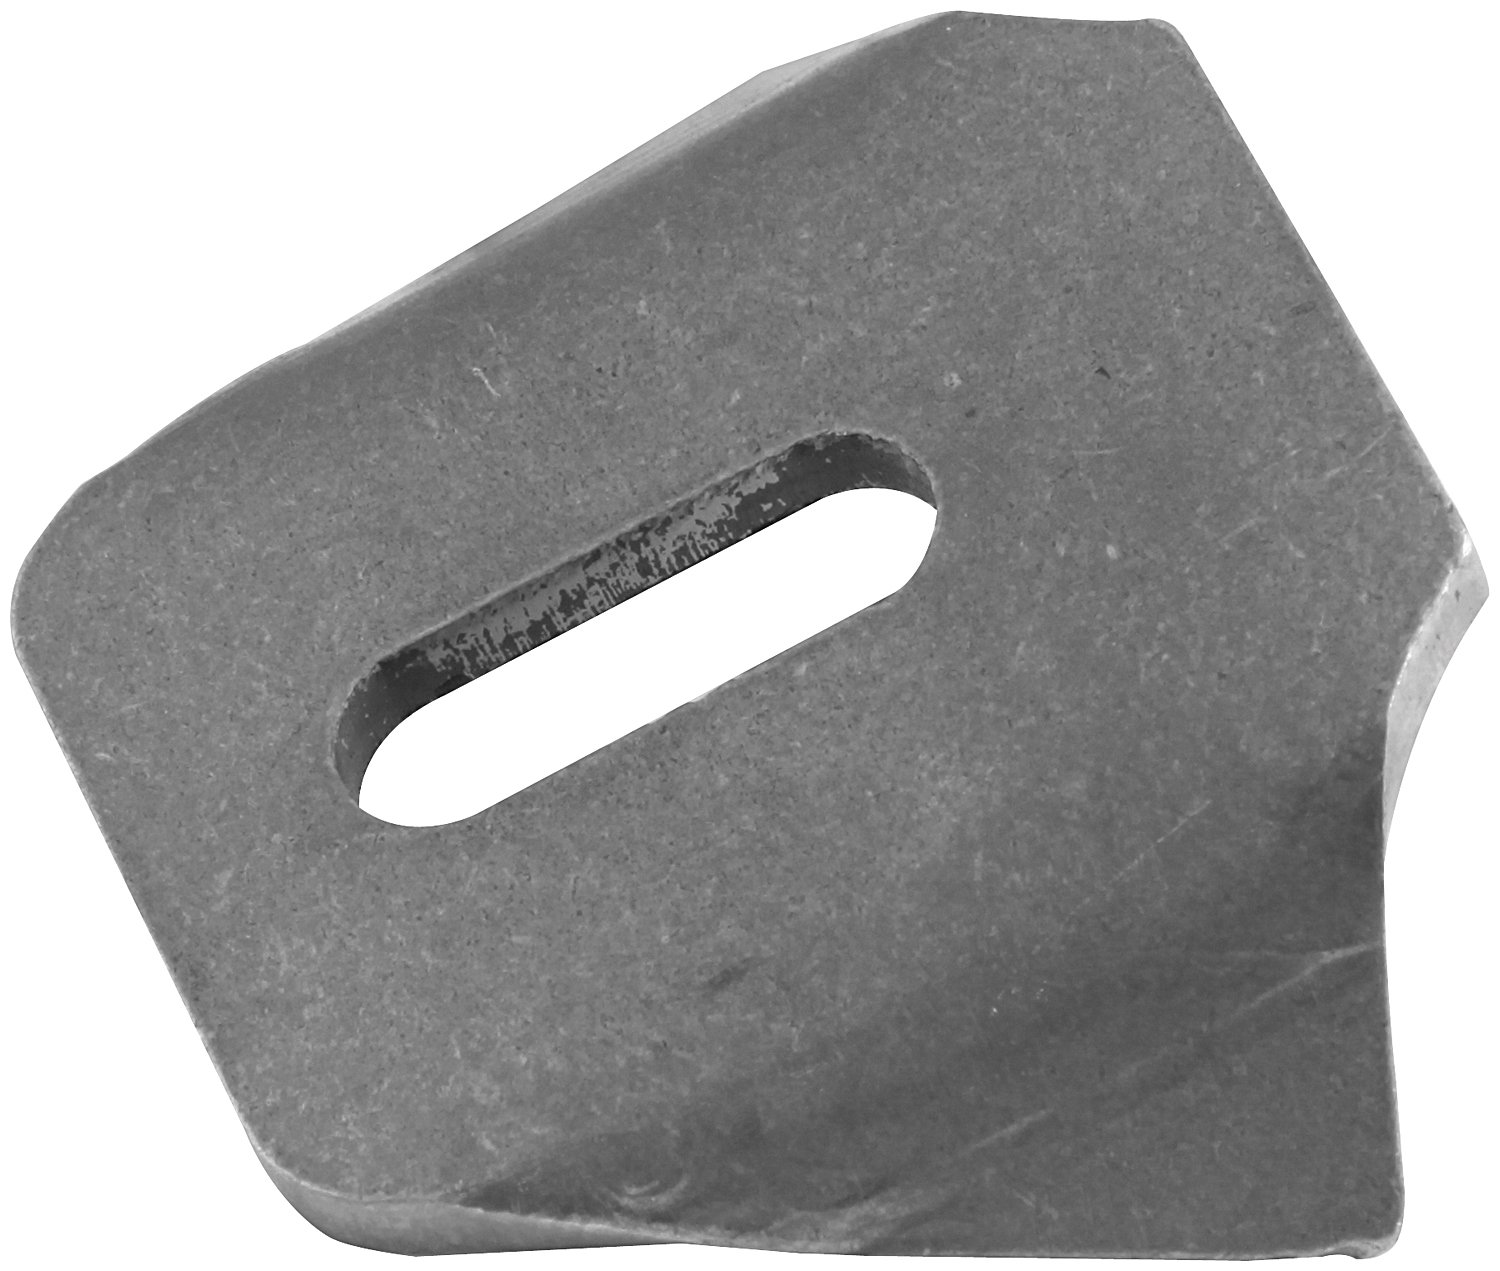 Allstar ALL60015 1-1/2' Tall 1/8' Thick 1/4' x 3/4' Hole 7/8' Mild Steel Center Hole Height Body Brace Chassis Tab, (Pack of 4) Allstar Performance